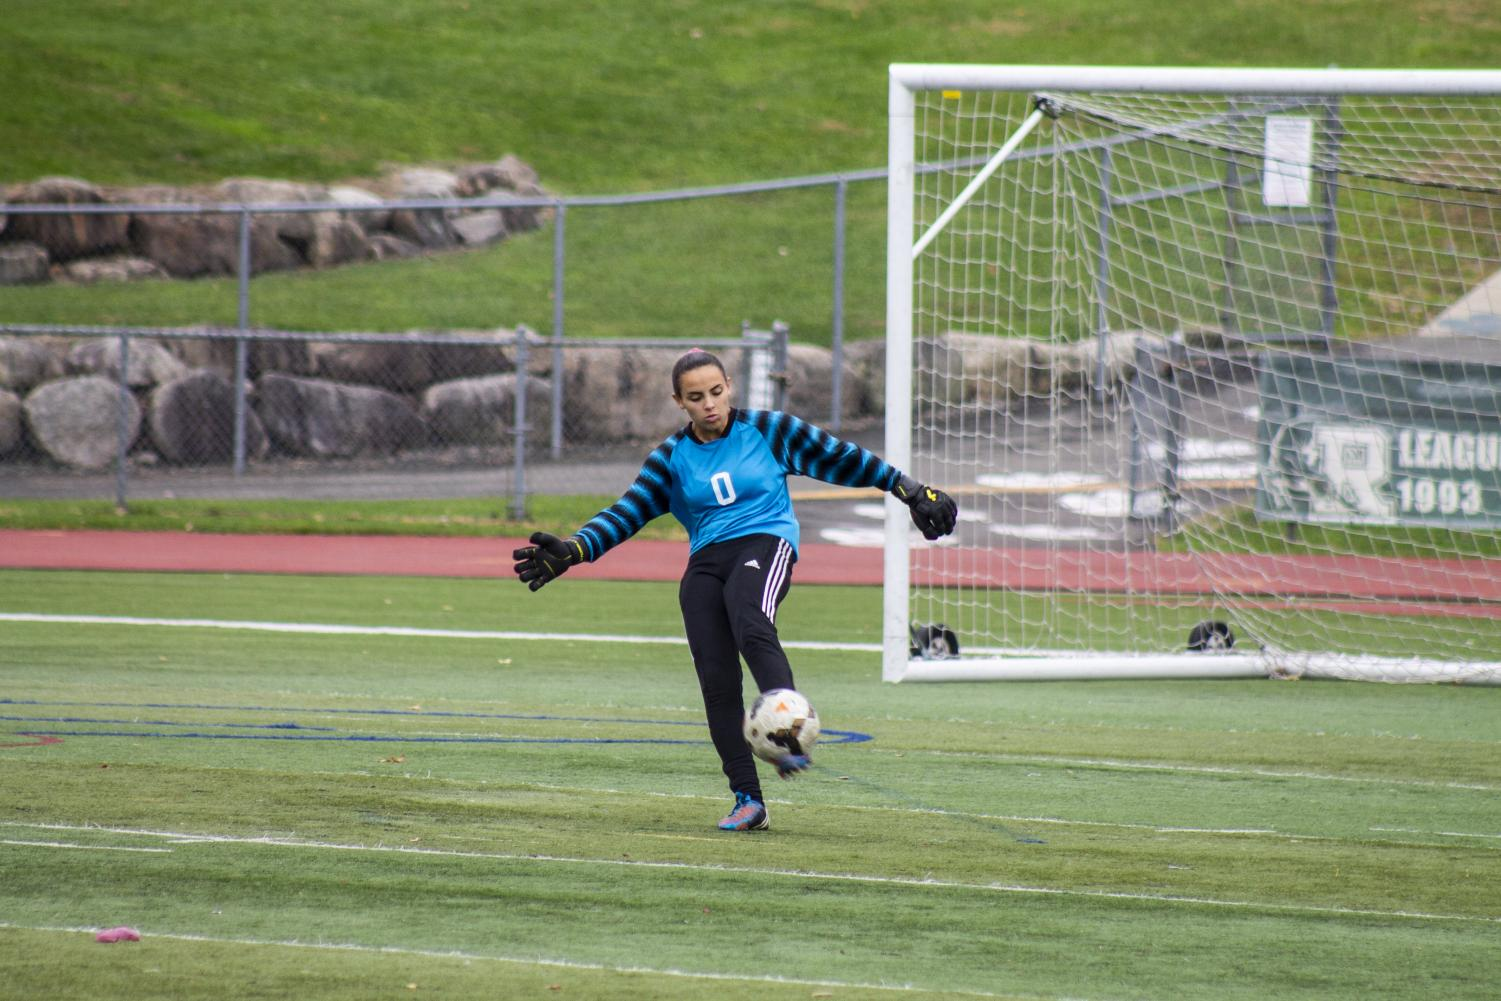 PV senior goalie Julia Spadafino kicks the ball for the Indians. Valley finished its 2018 season at 12-6-1 and an appearance in the quarterfinals of the state tournament.